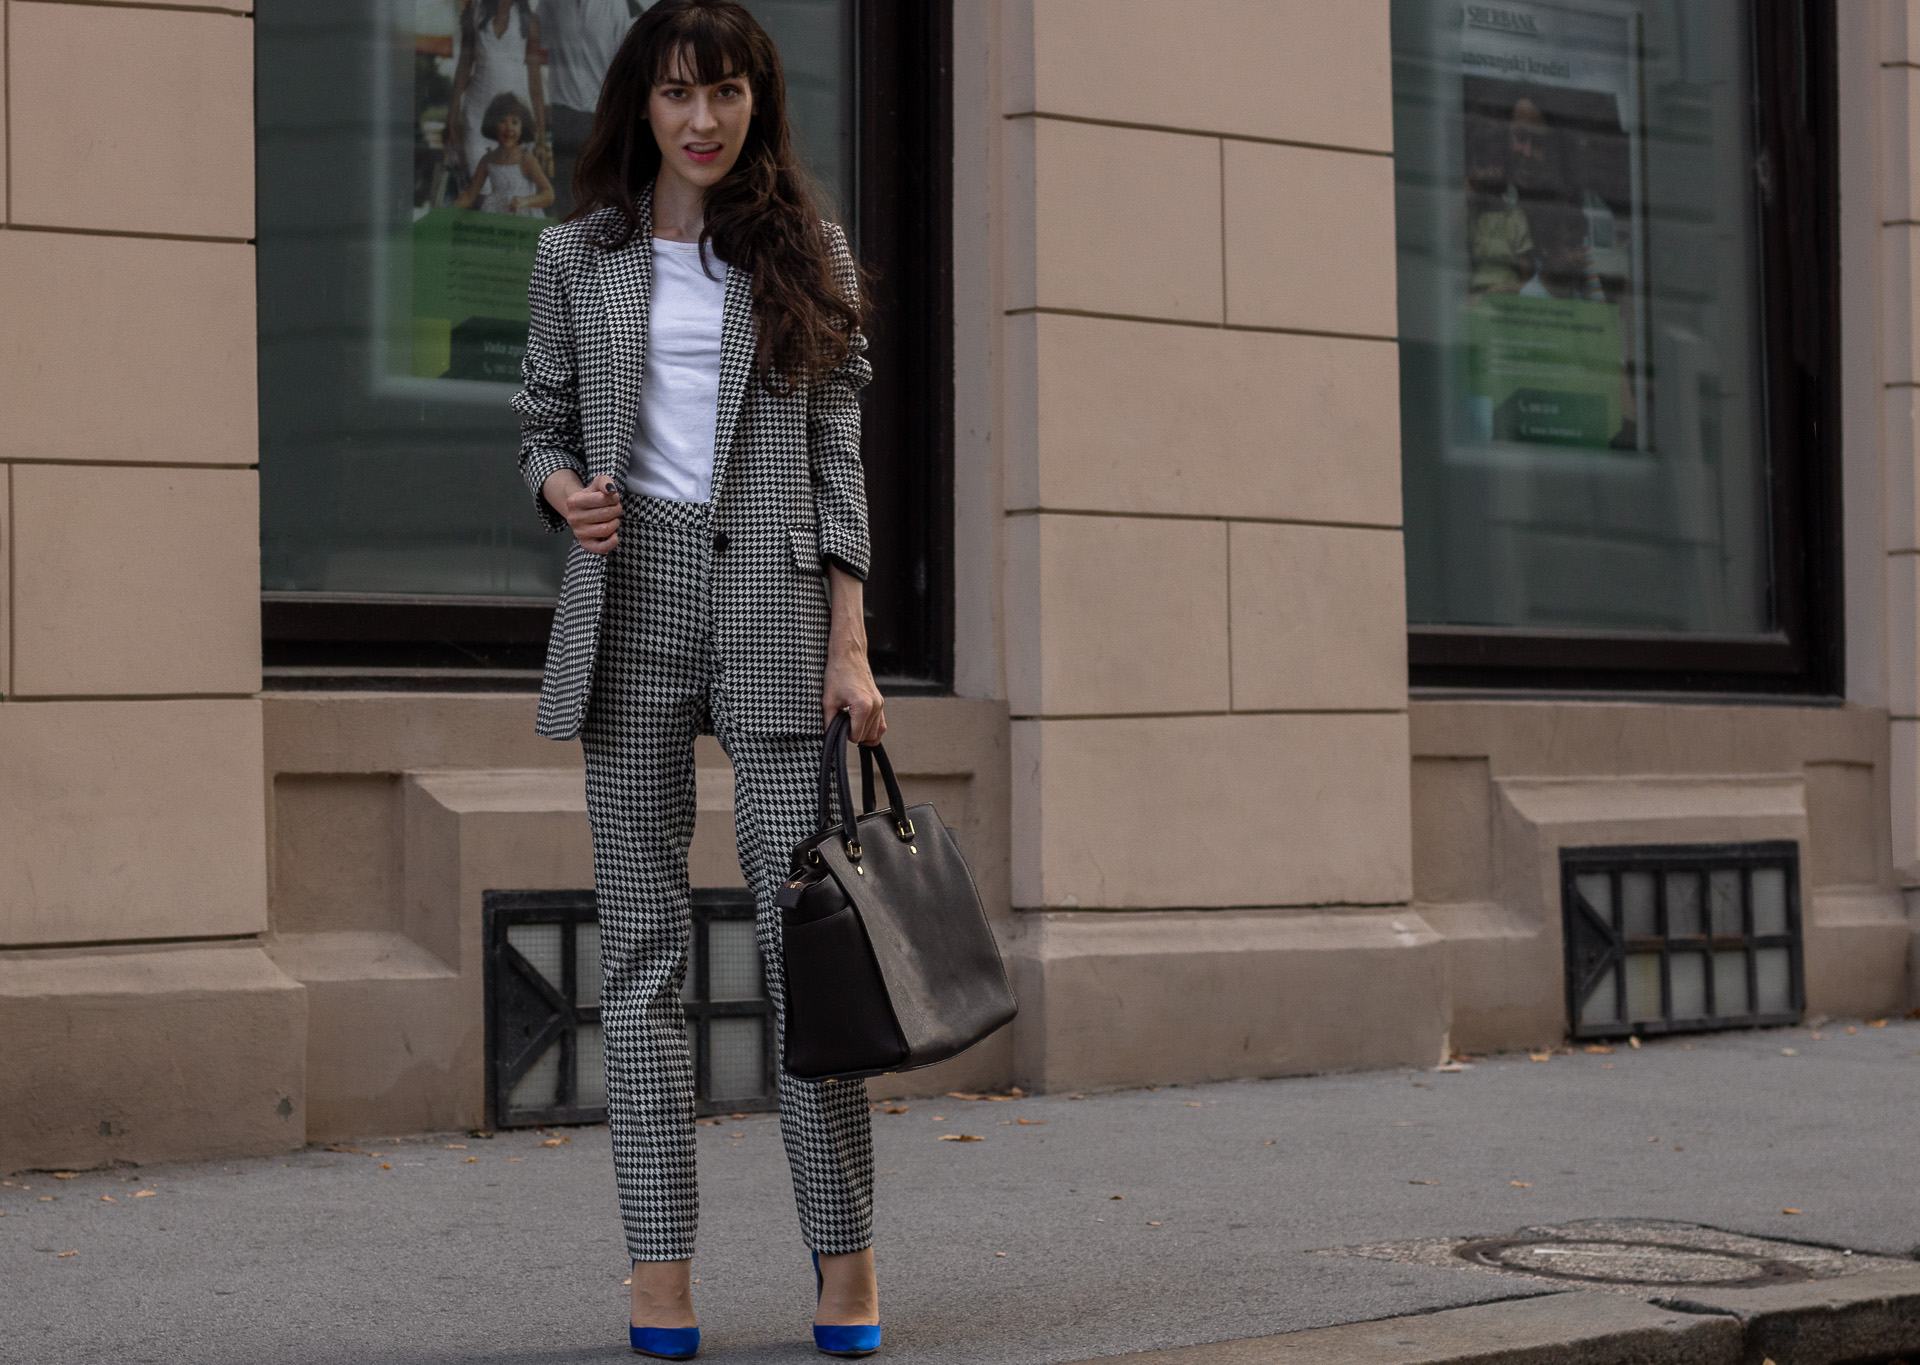 Fashion blogger Veronika Lipar of Brunette from Wall Street dressed in white Sandro houndstooth tailored blazer European Culture houndstooth pants Michael Kors Selma bag blue Gianvito Rossi pumps for office in fall